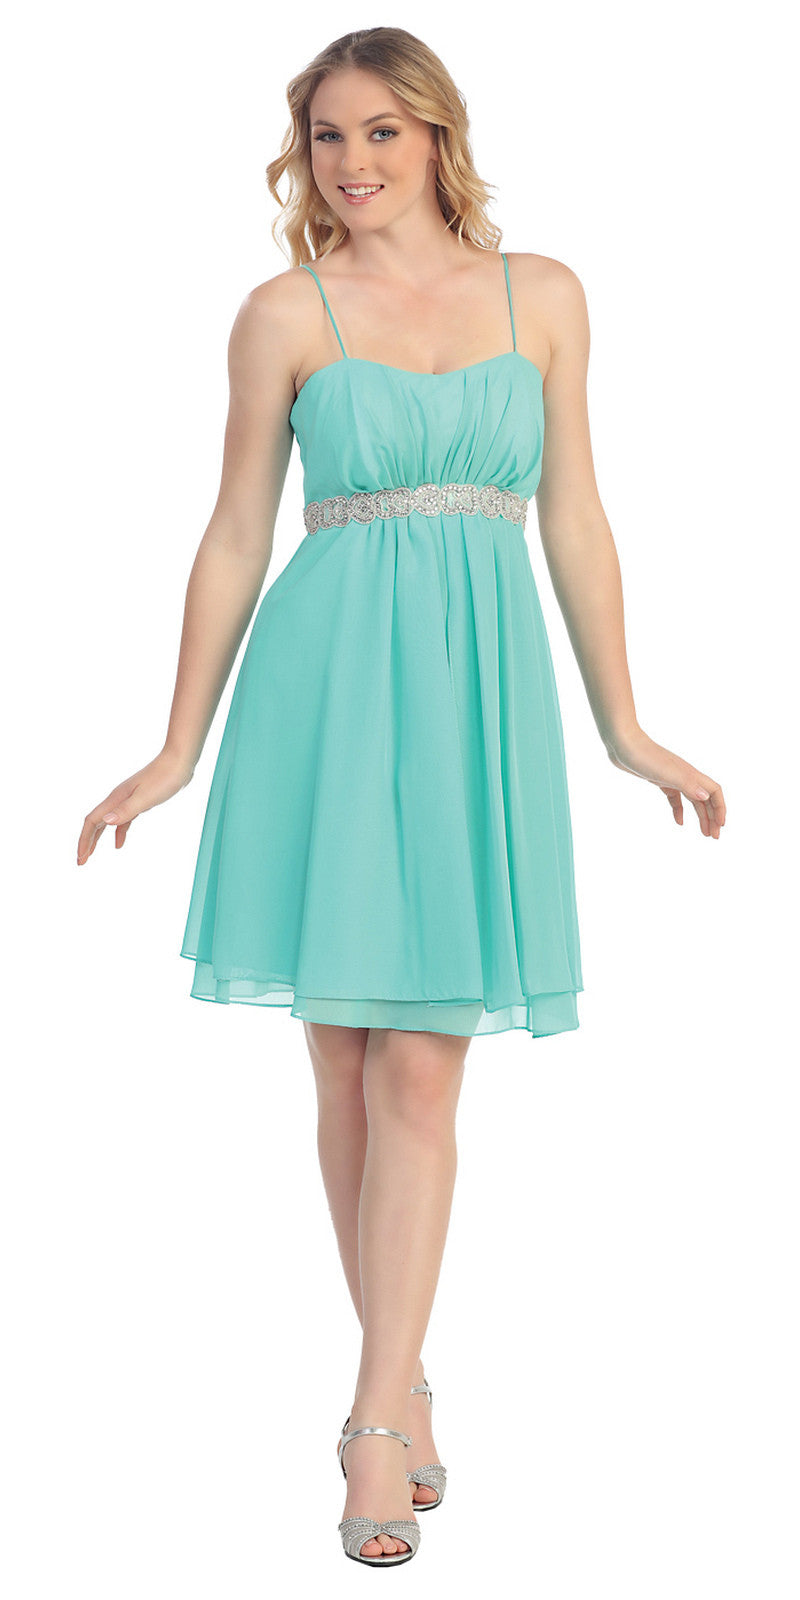 Short Knee Length Mint Chiffon Dress Empire Waist Spaghetti Straps